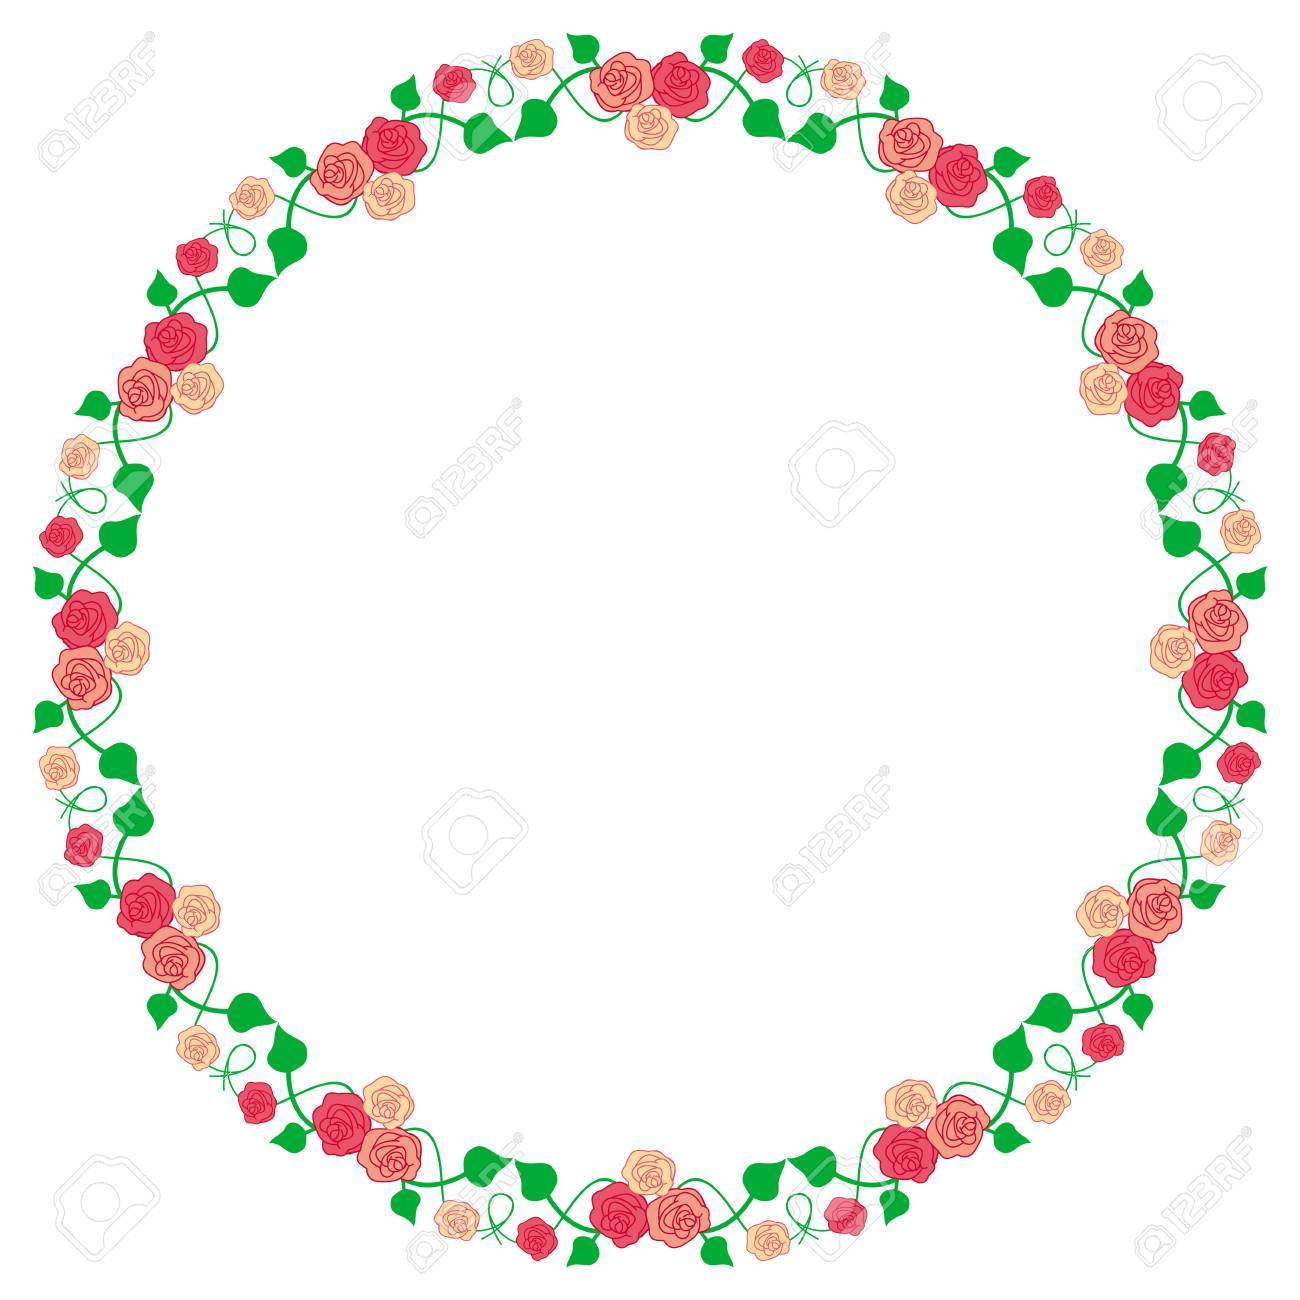 Round Frame With Roses Royalty Free Cliparts, Vectors, And Stock ...